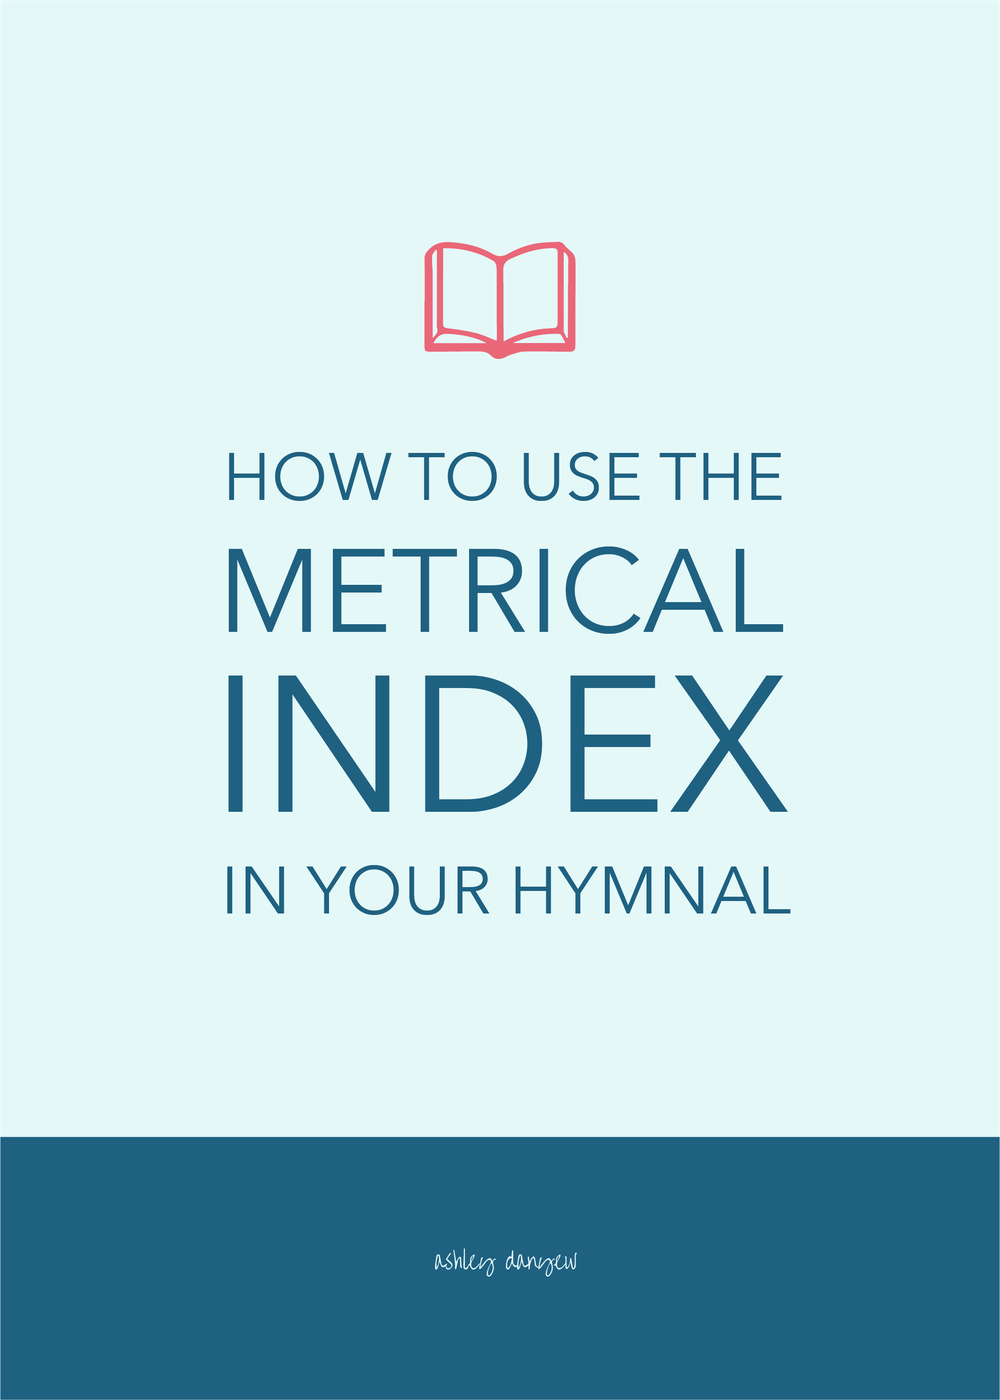 How to Use the Metrical Index in Your Hymnal